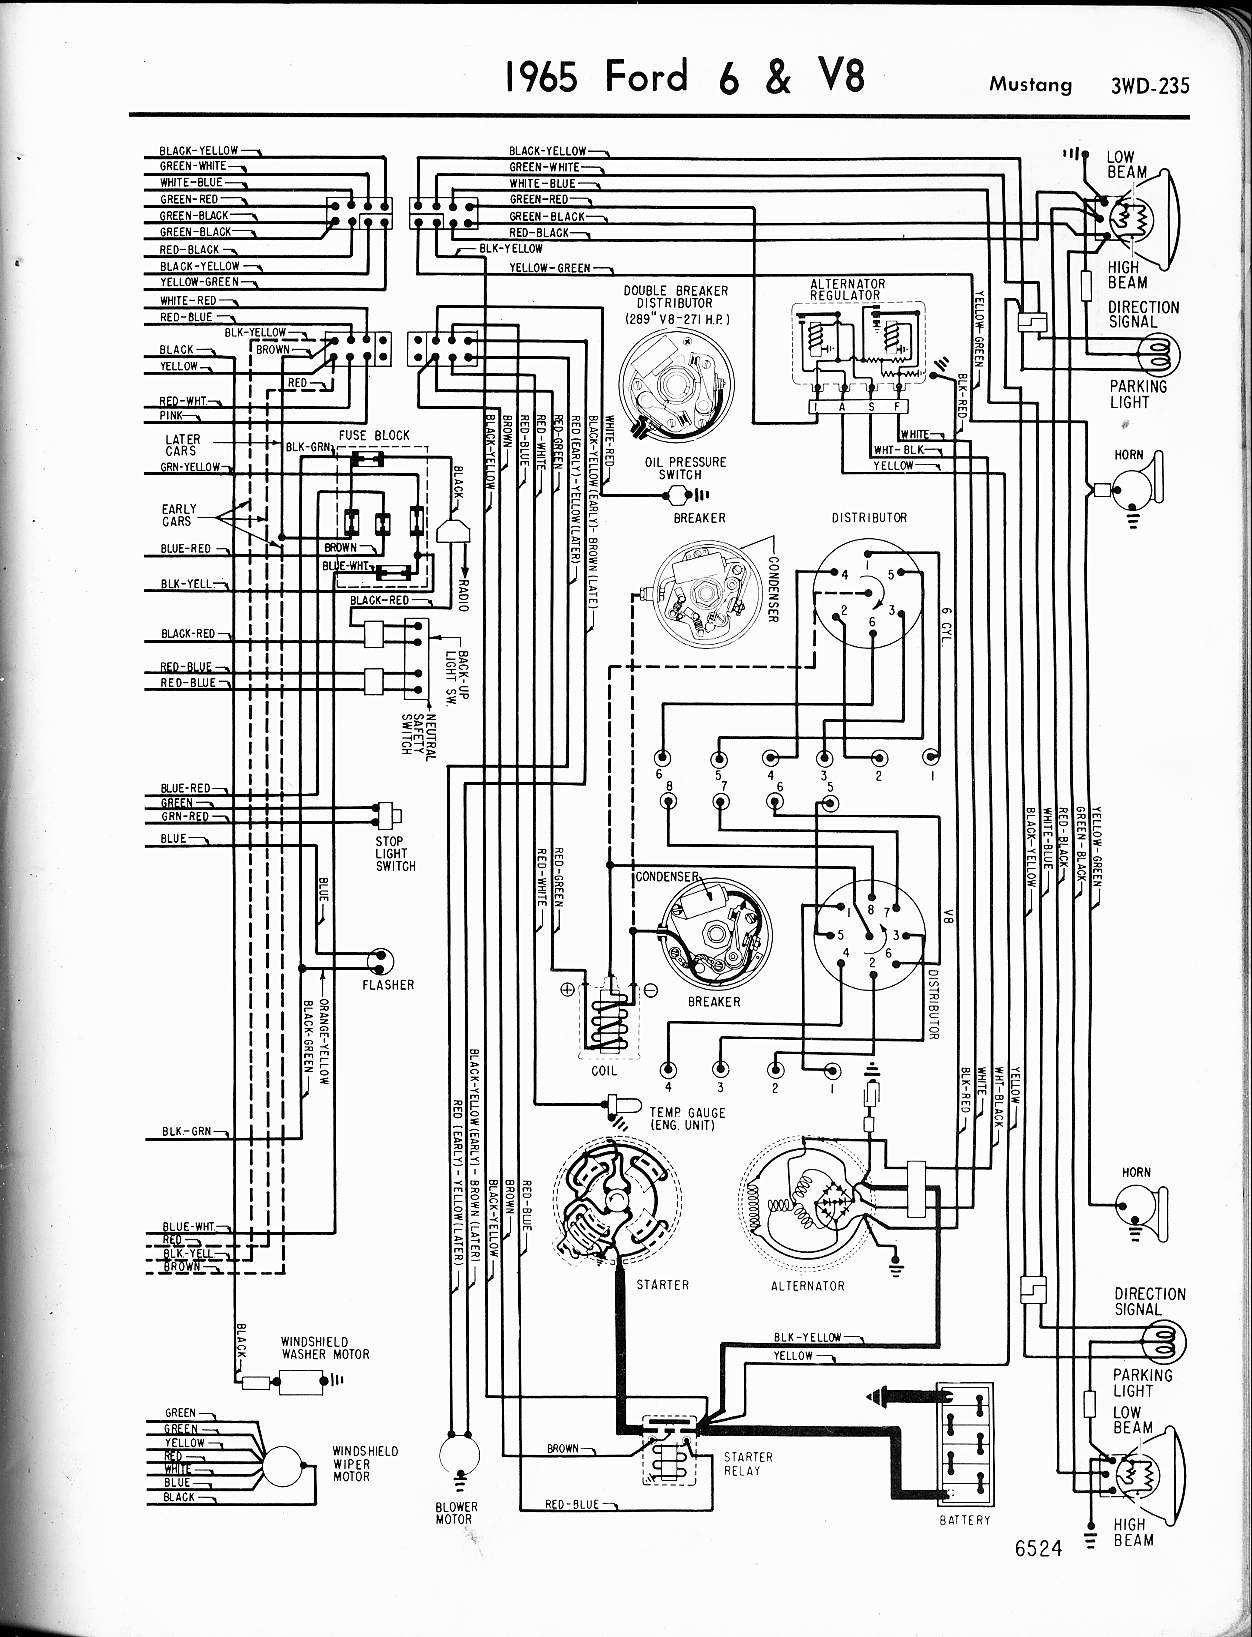 1965_mustang_wiring_2 ford diagrams 65 mustang ignition wiring diagram at mifinder.co